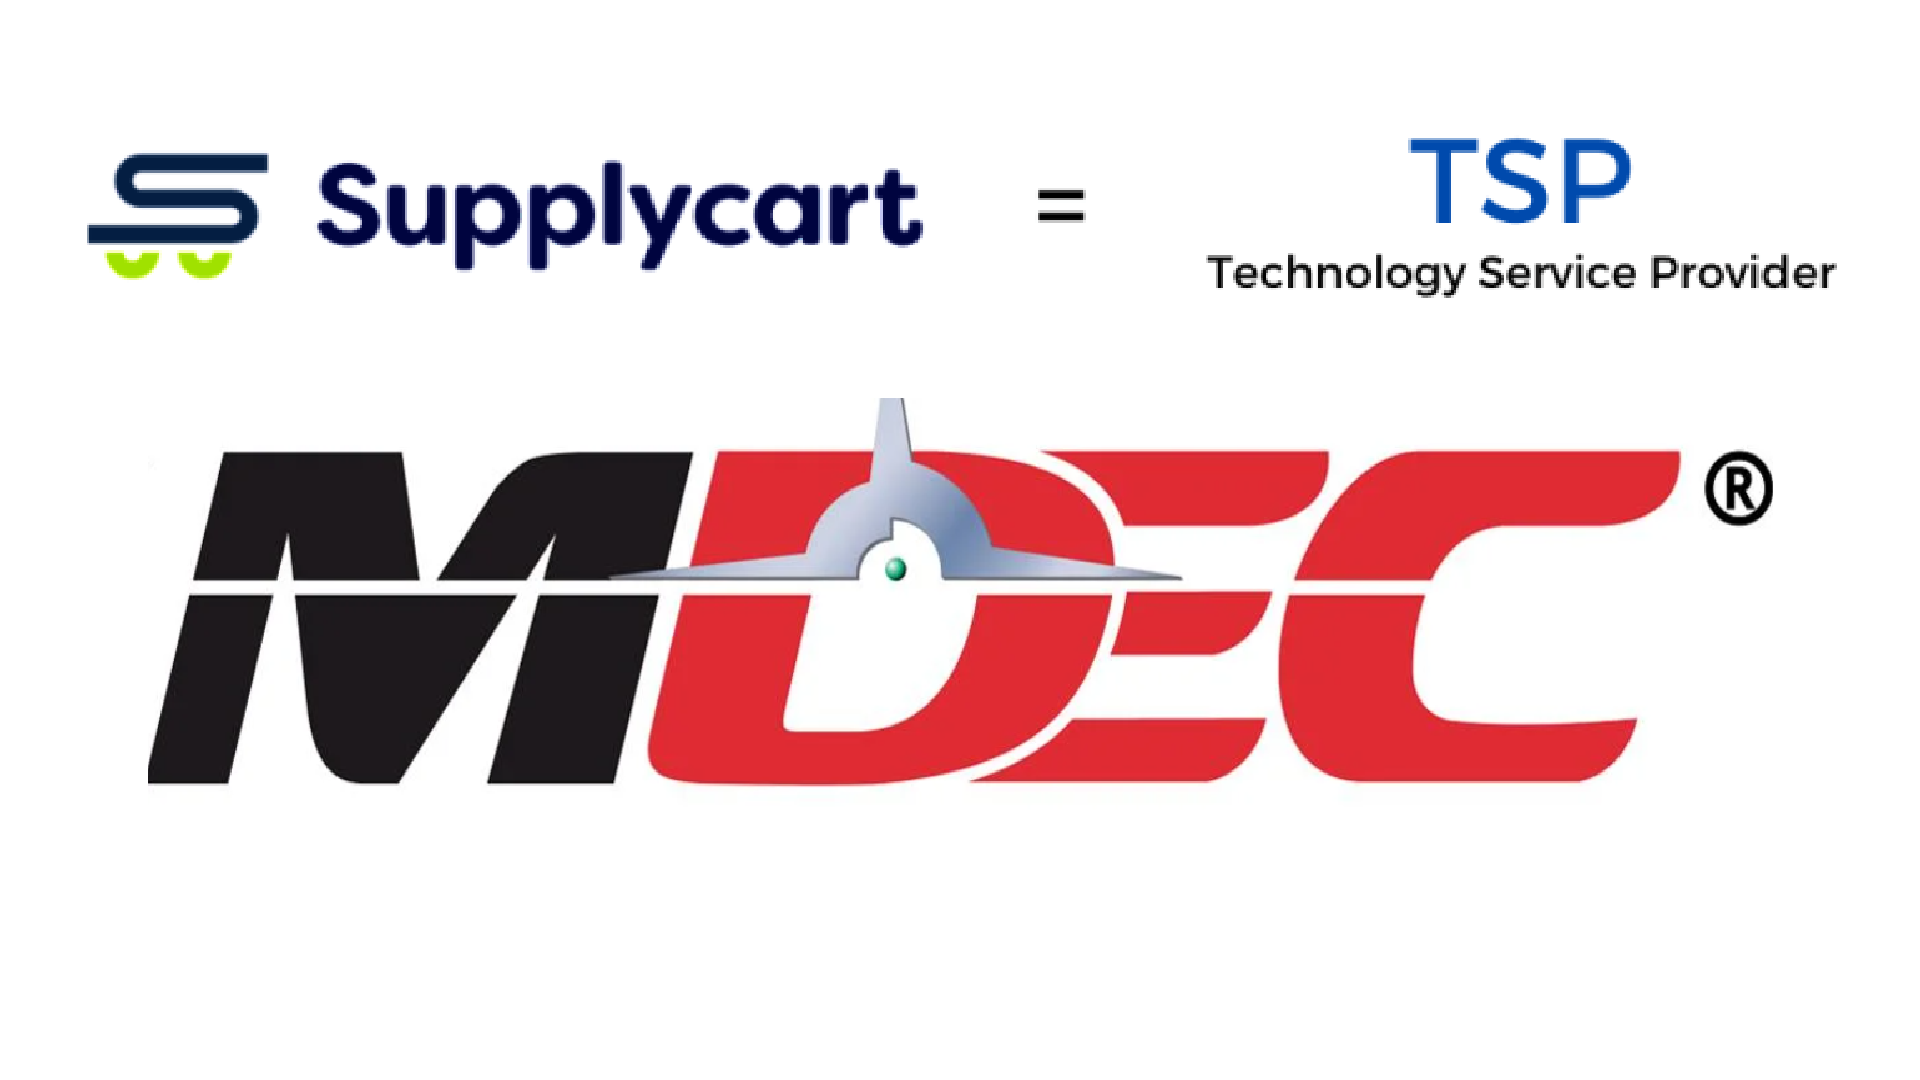 MDEC ADOPTS SUPPLYCART AS A TECHNOLOGY SERVICE PROVIDER